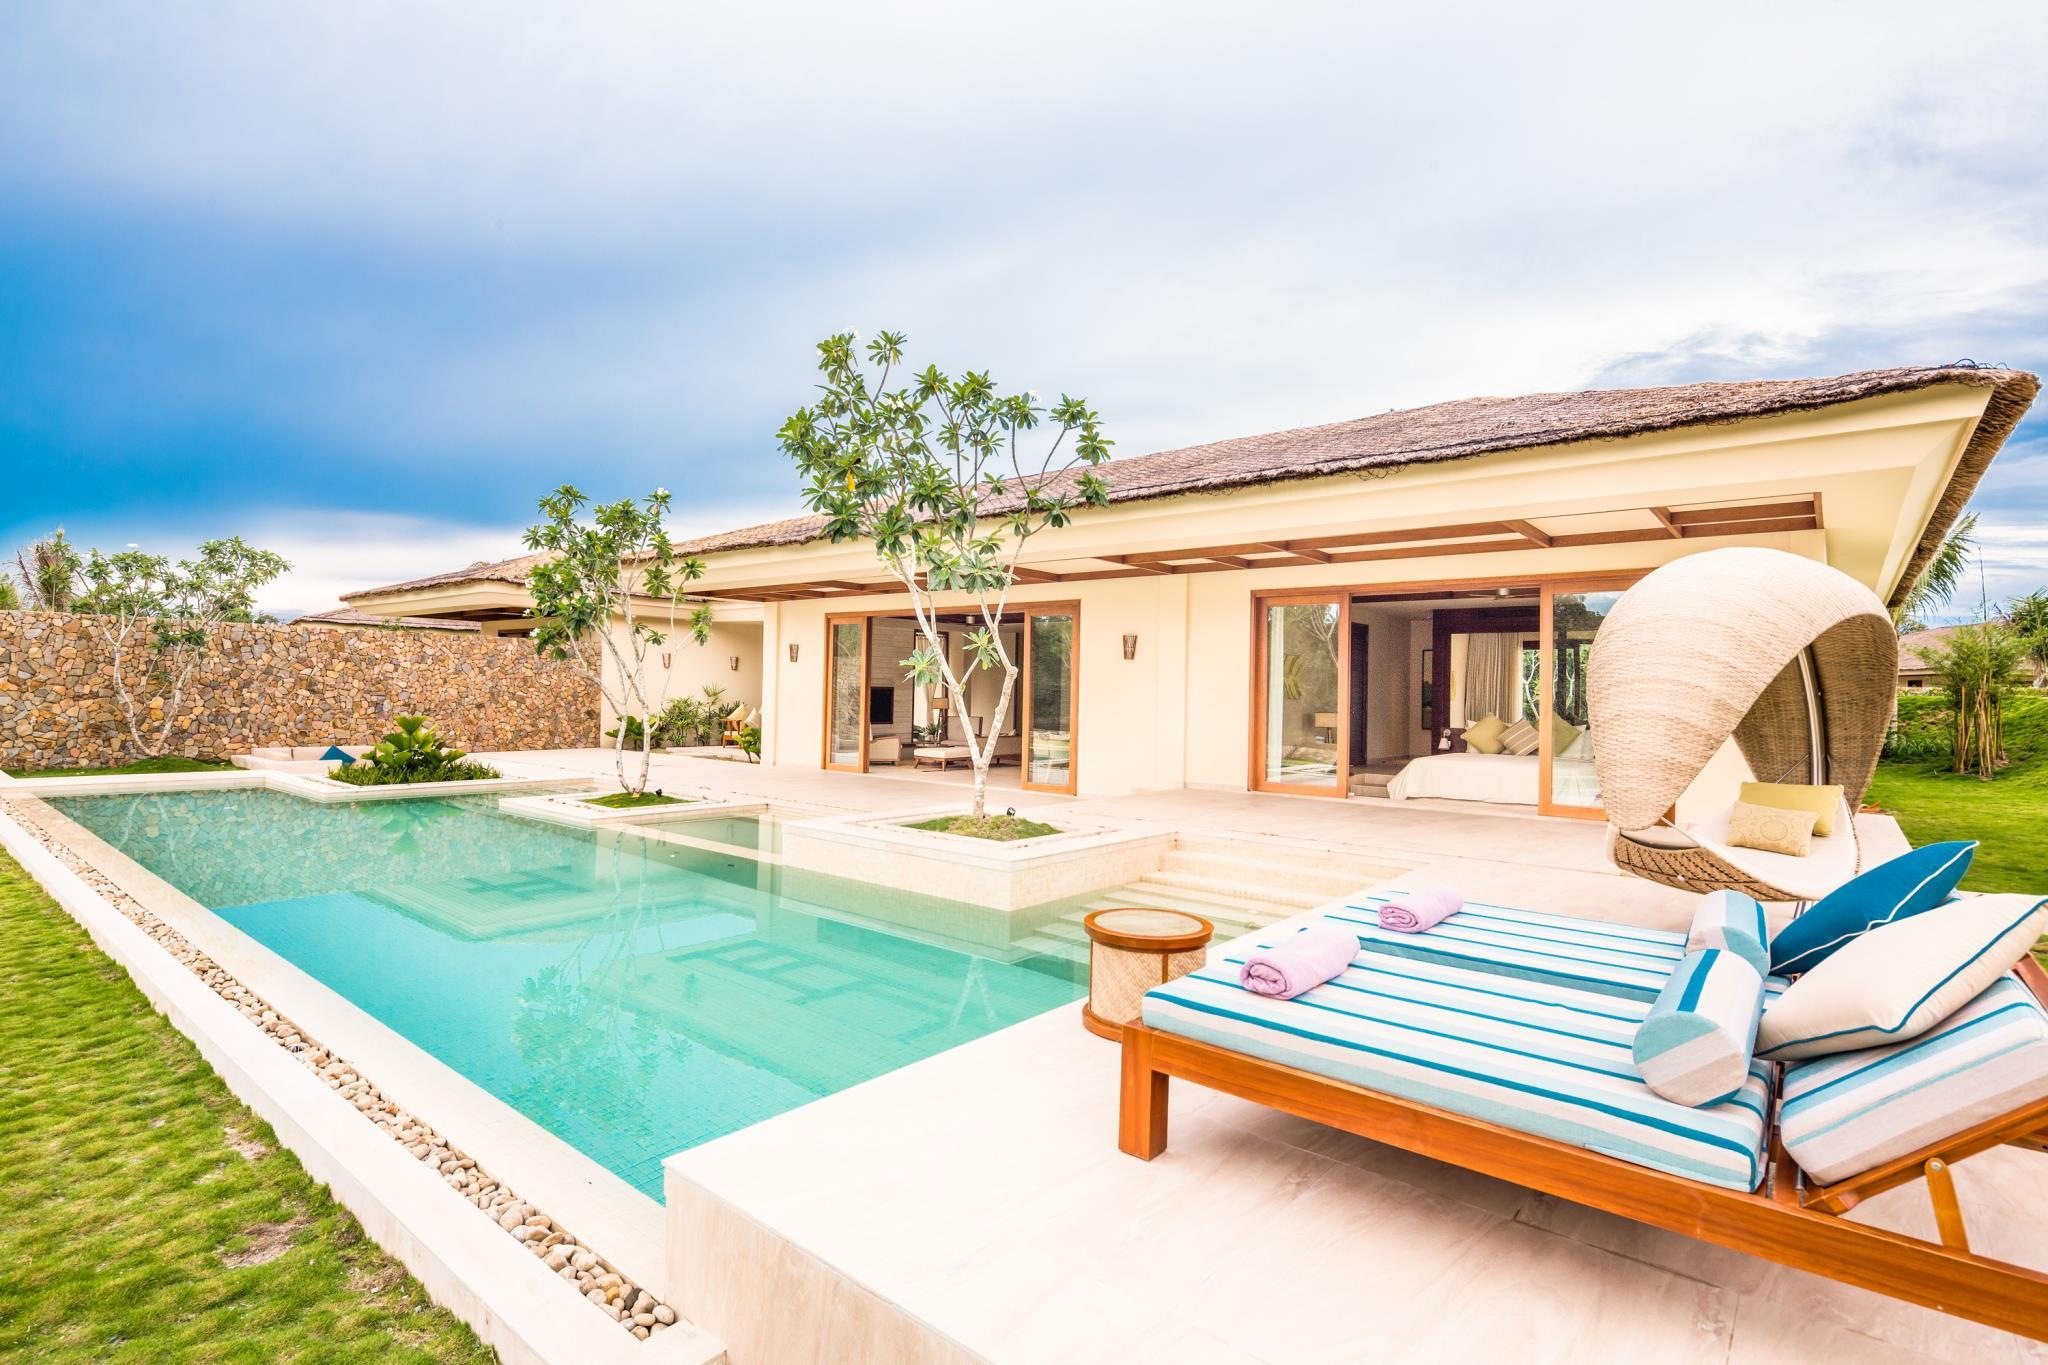 2-Bedroom Ocean Villa with Pool - All Spa treatment included